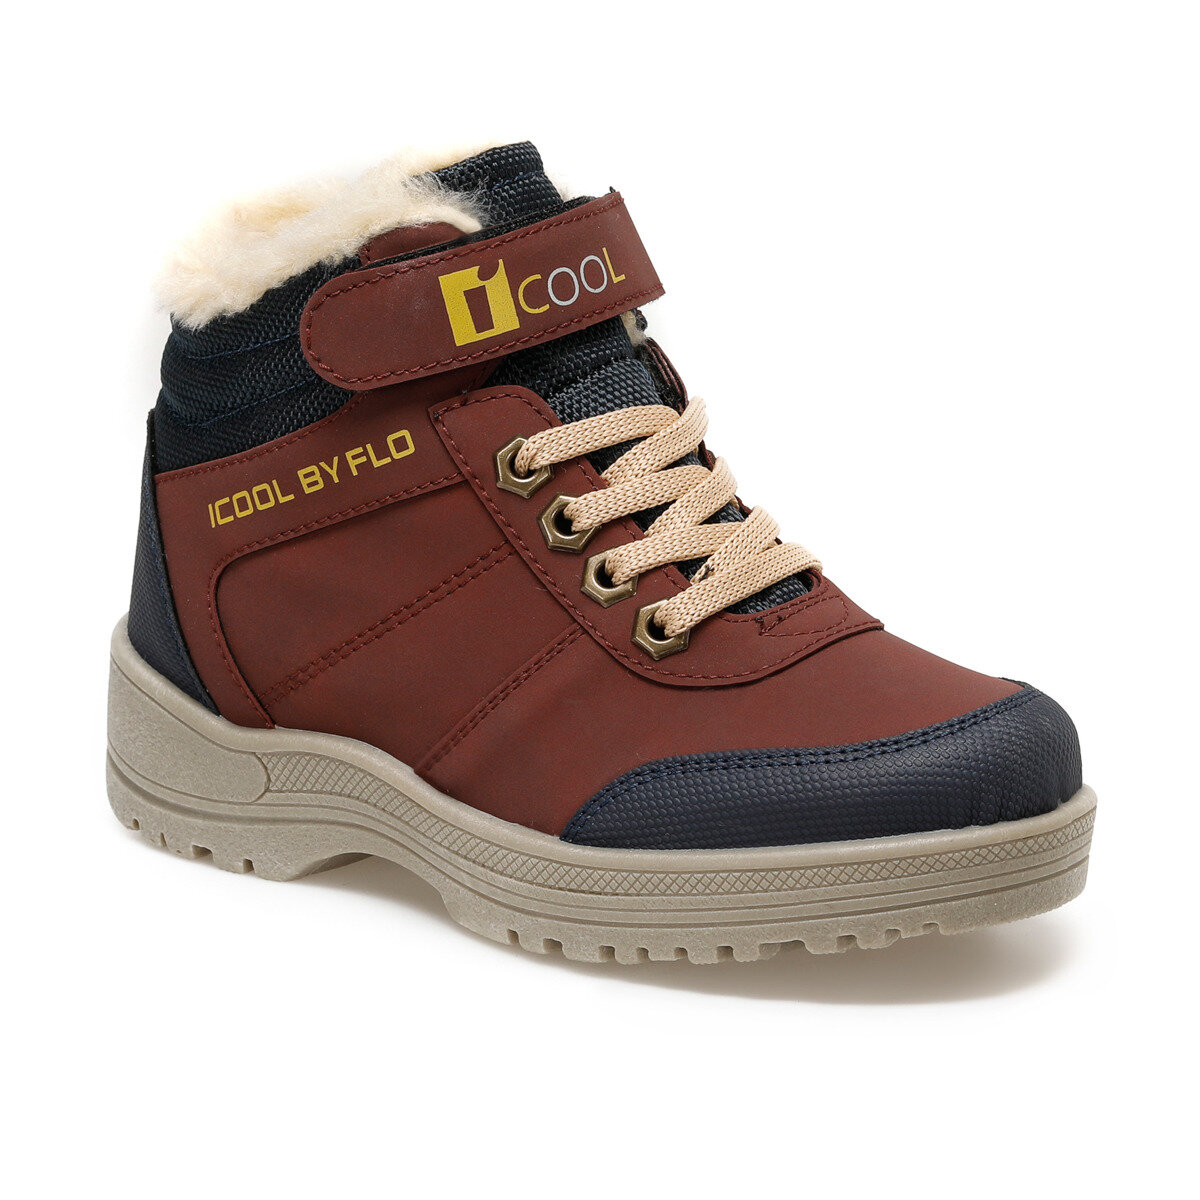 FLO WARM.2 Burgundy Girls Child Outdoors I-Cool